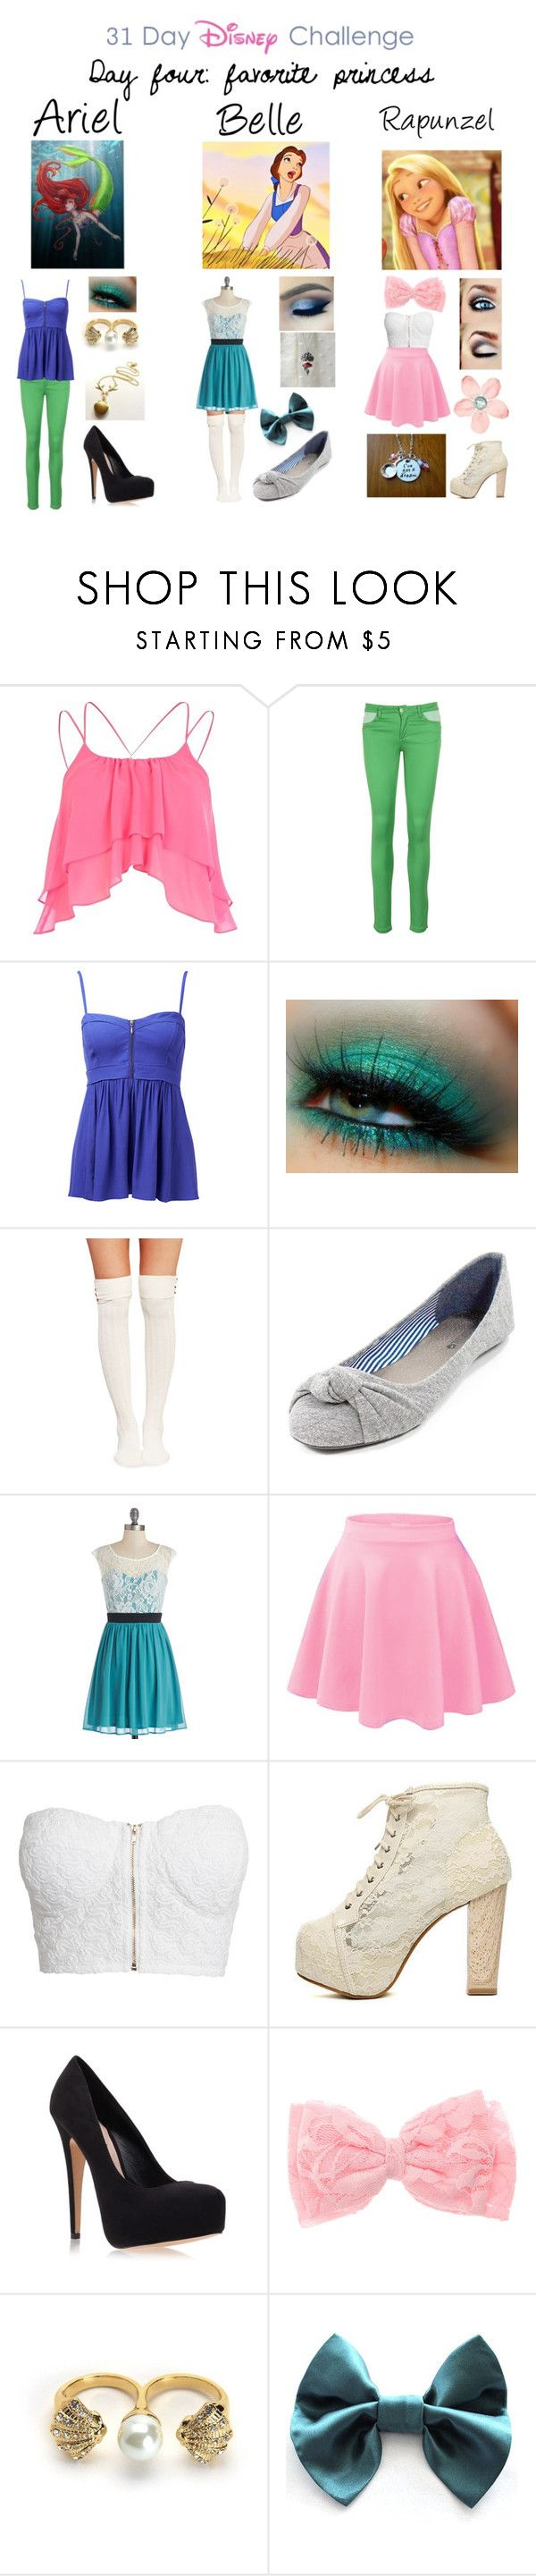 """""""Favorite princesses"""" by kittykaitxo ❤ liked on Polyvore featuring River Island, Disney, Naf Naf, Forever New, Villain, Wet Seal, NLY Trend, Carvela Kurt Geiger and Juicy Couture"""